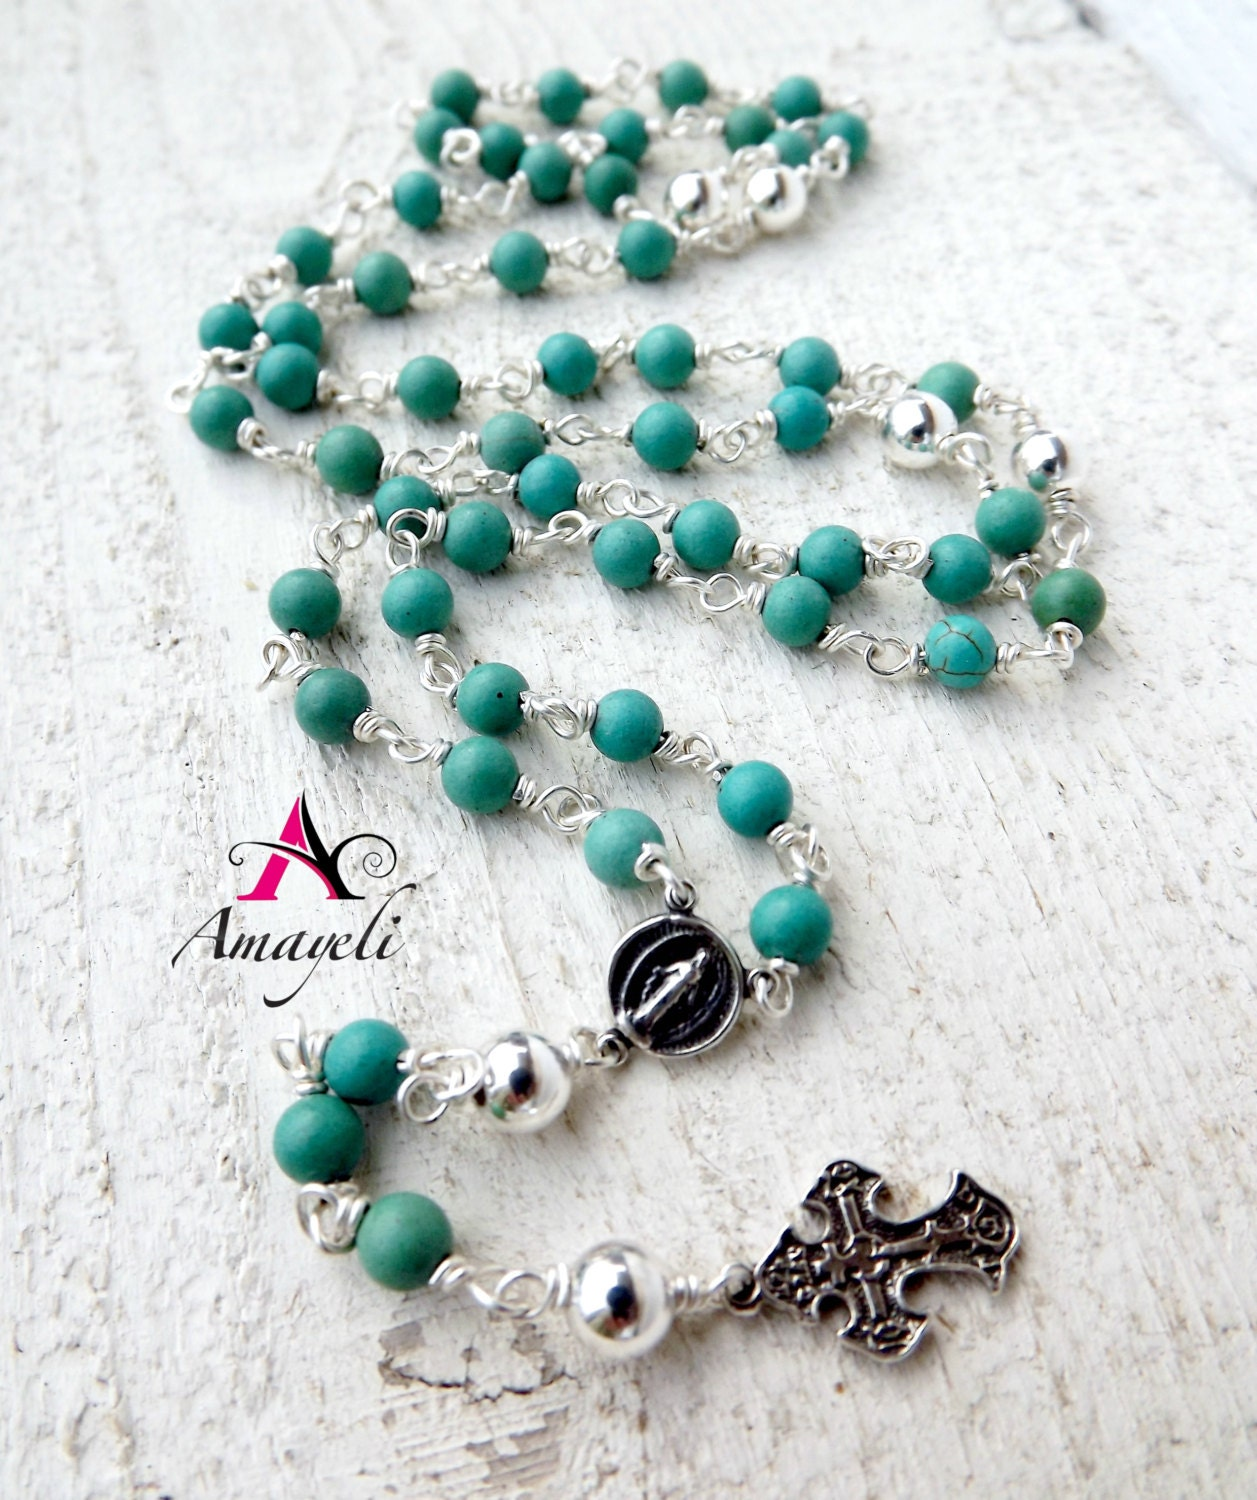 rosaries rosary sterling silver rosary gemstone rosary